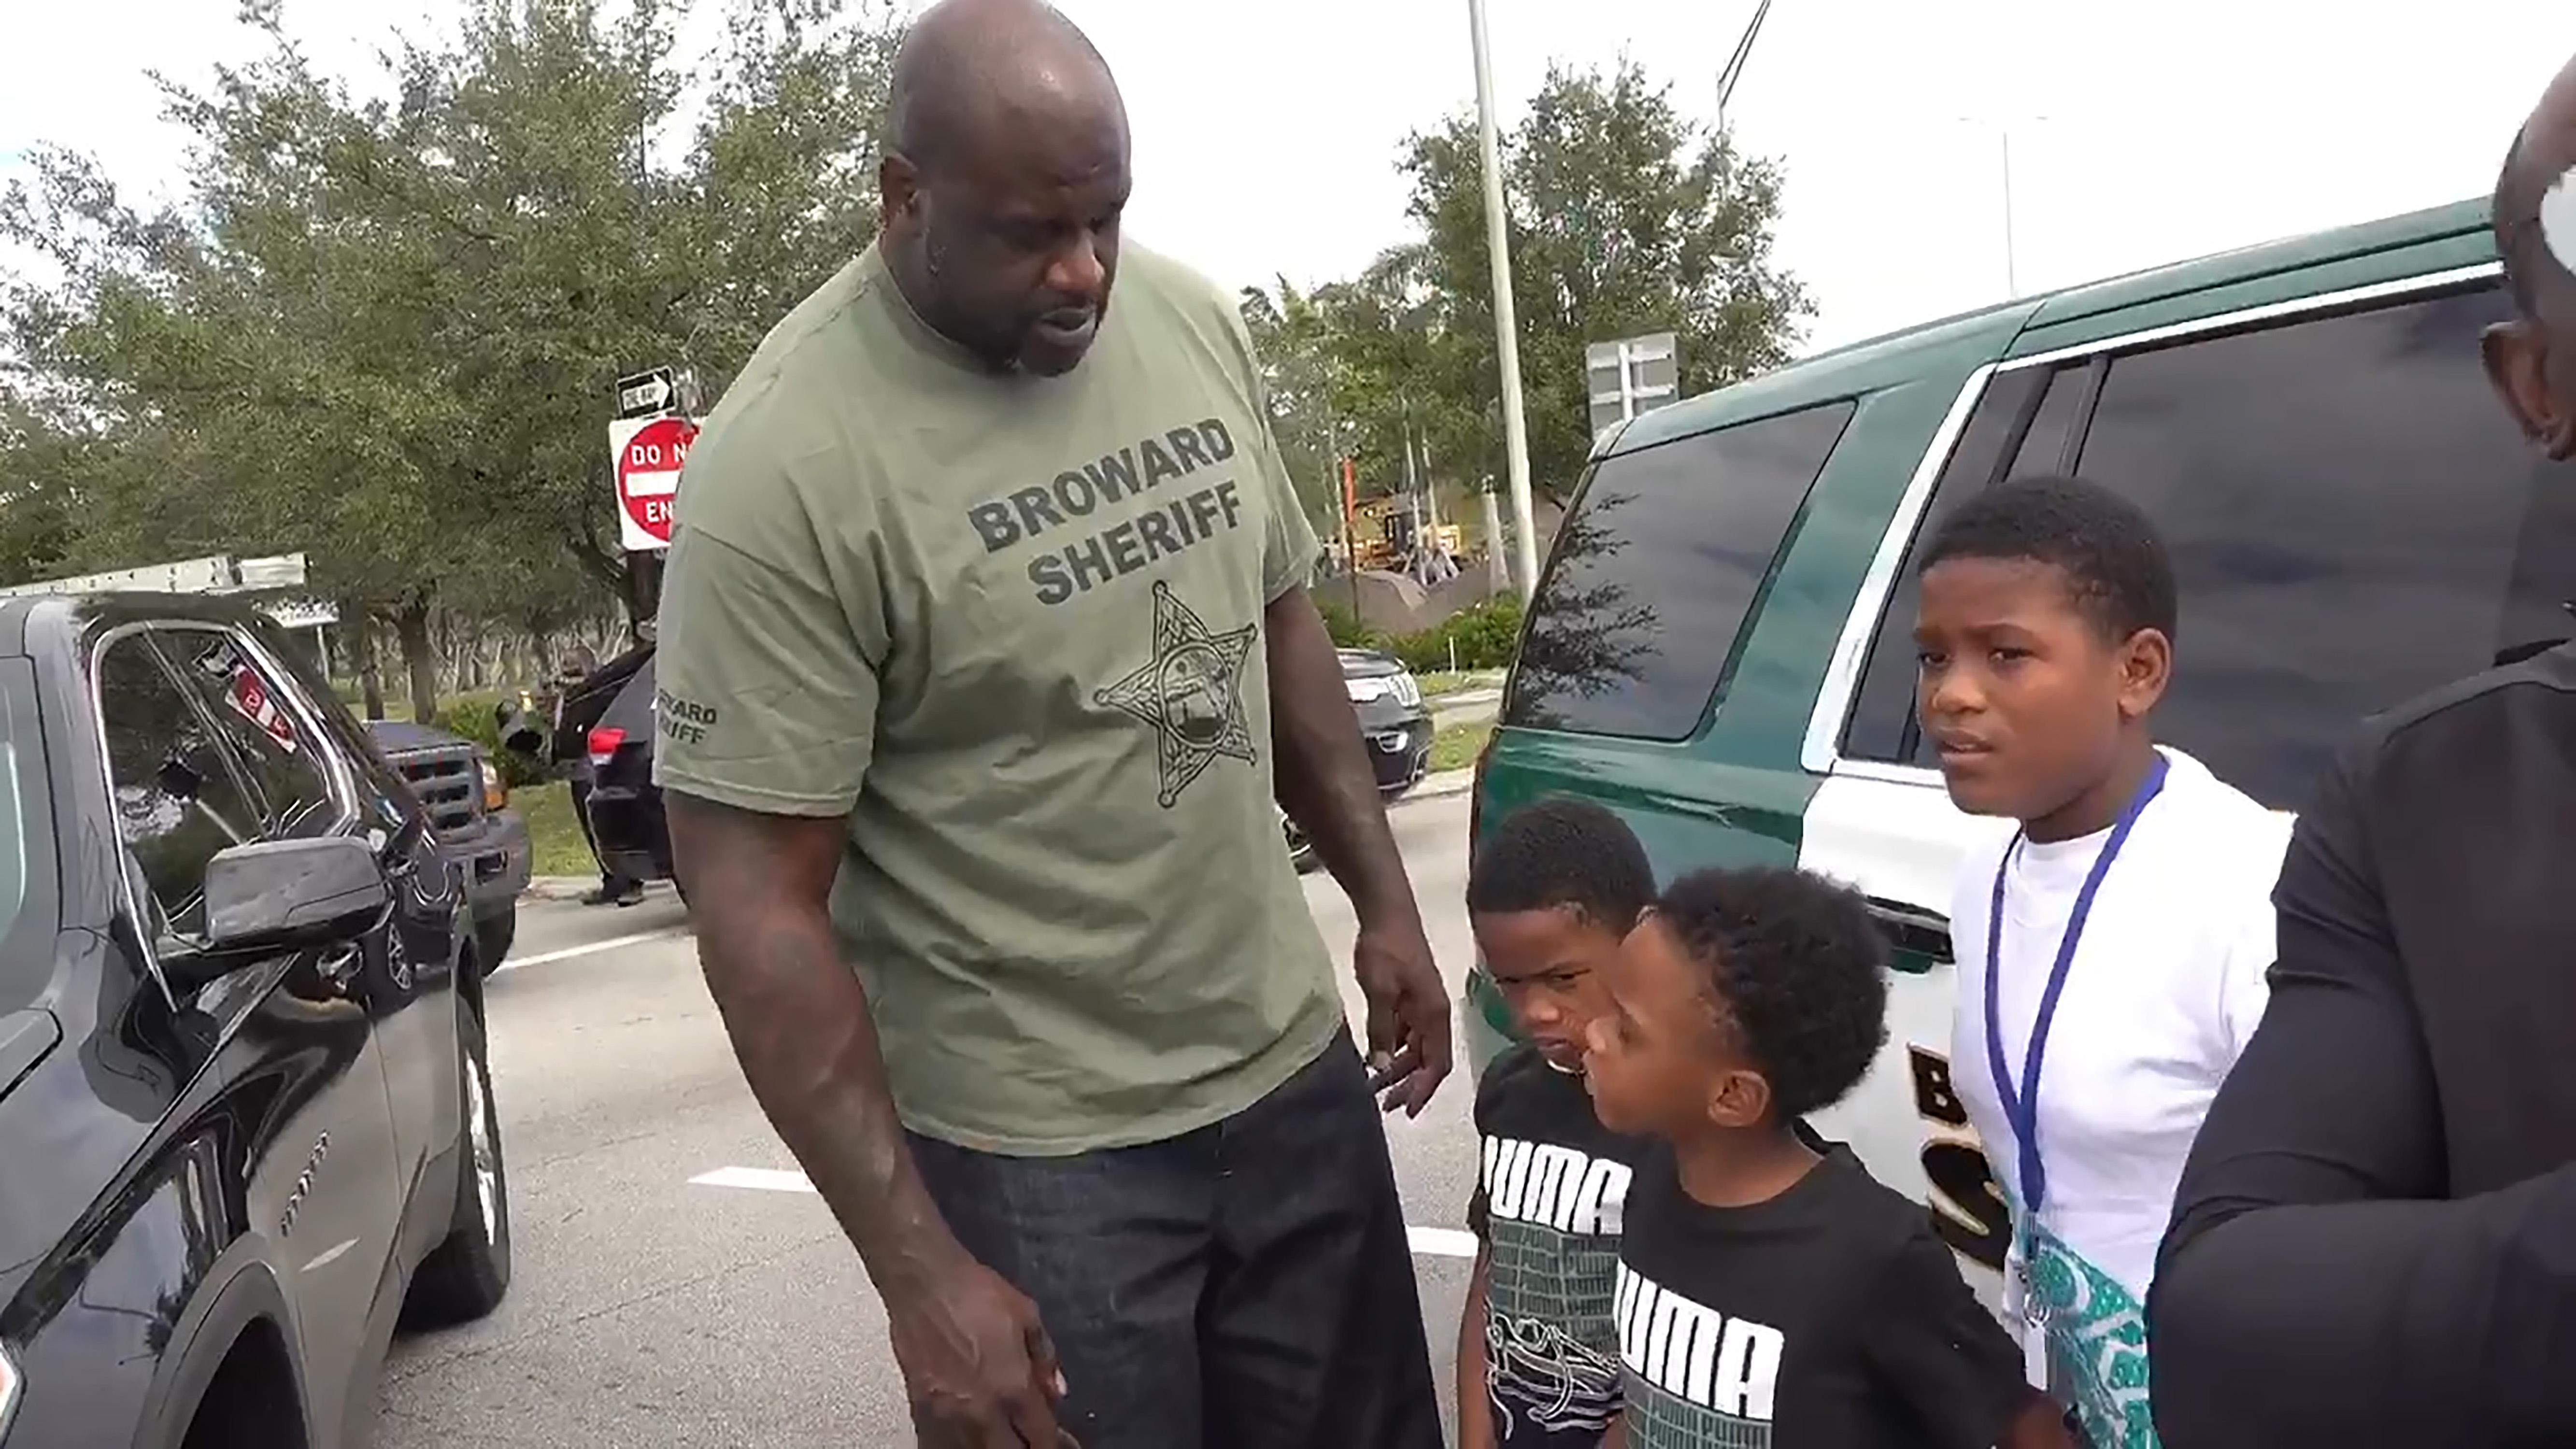 Shaquille O'Neal helped a family involved in a head-on collision in Florida